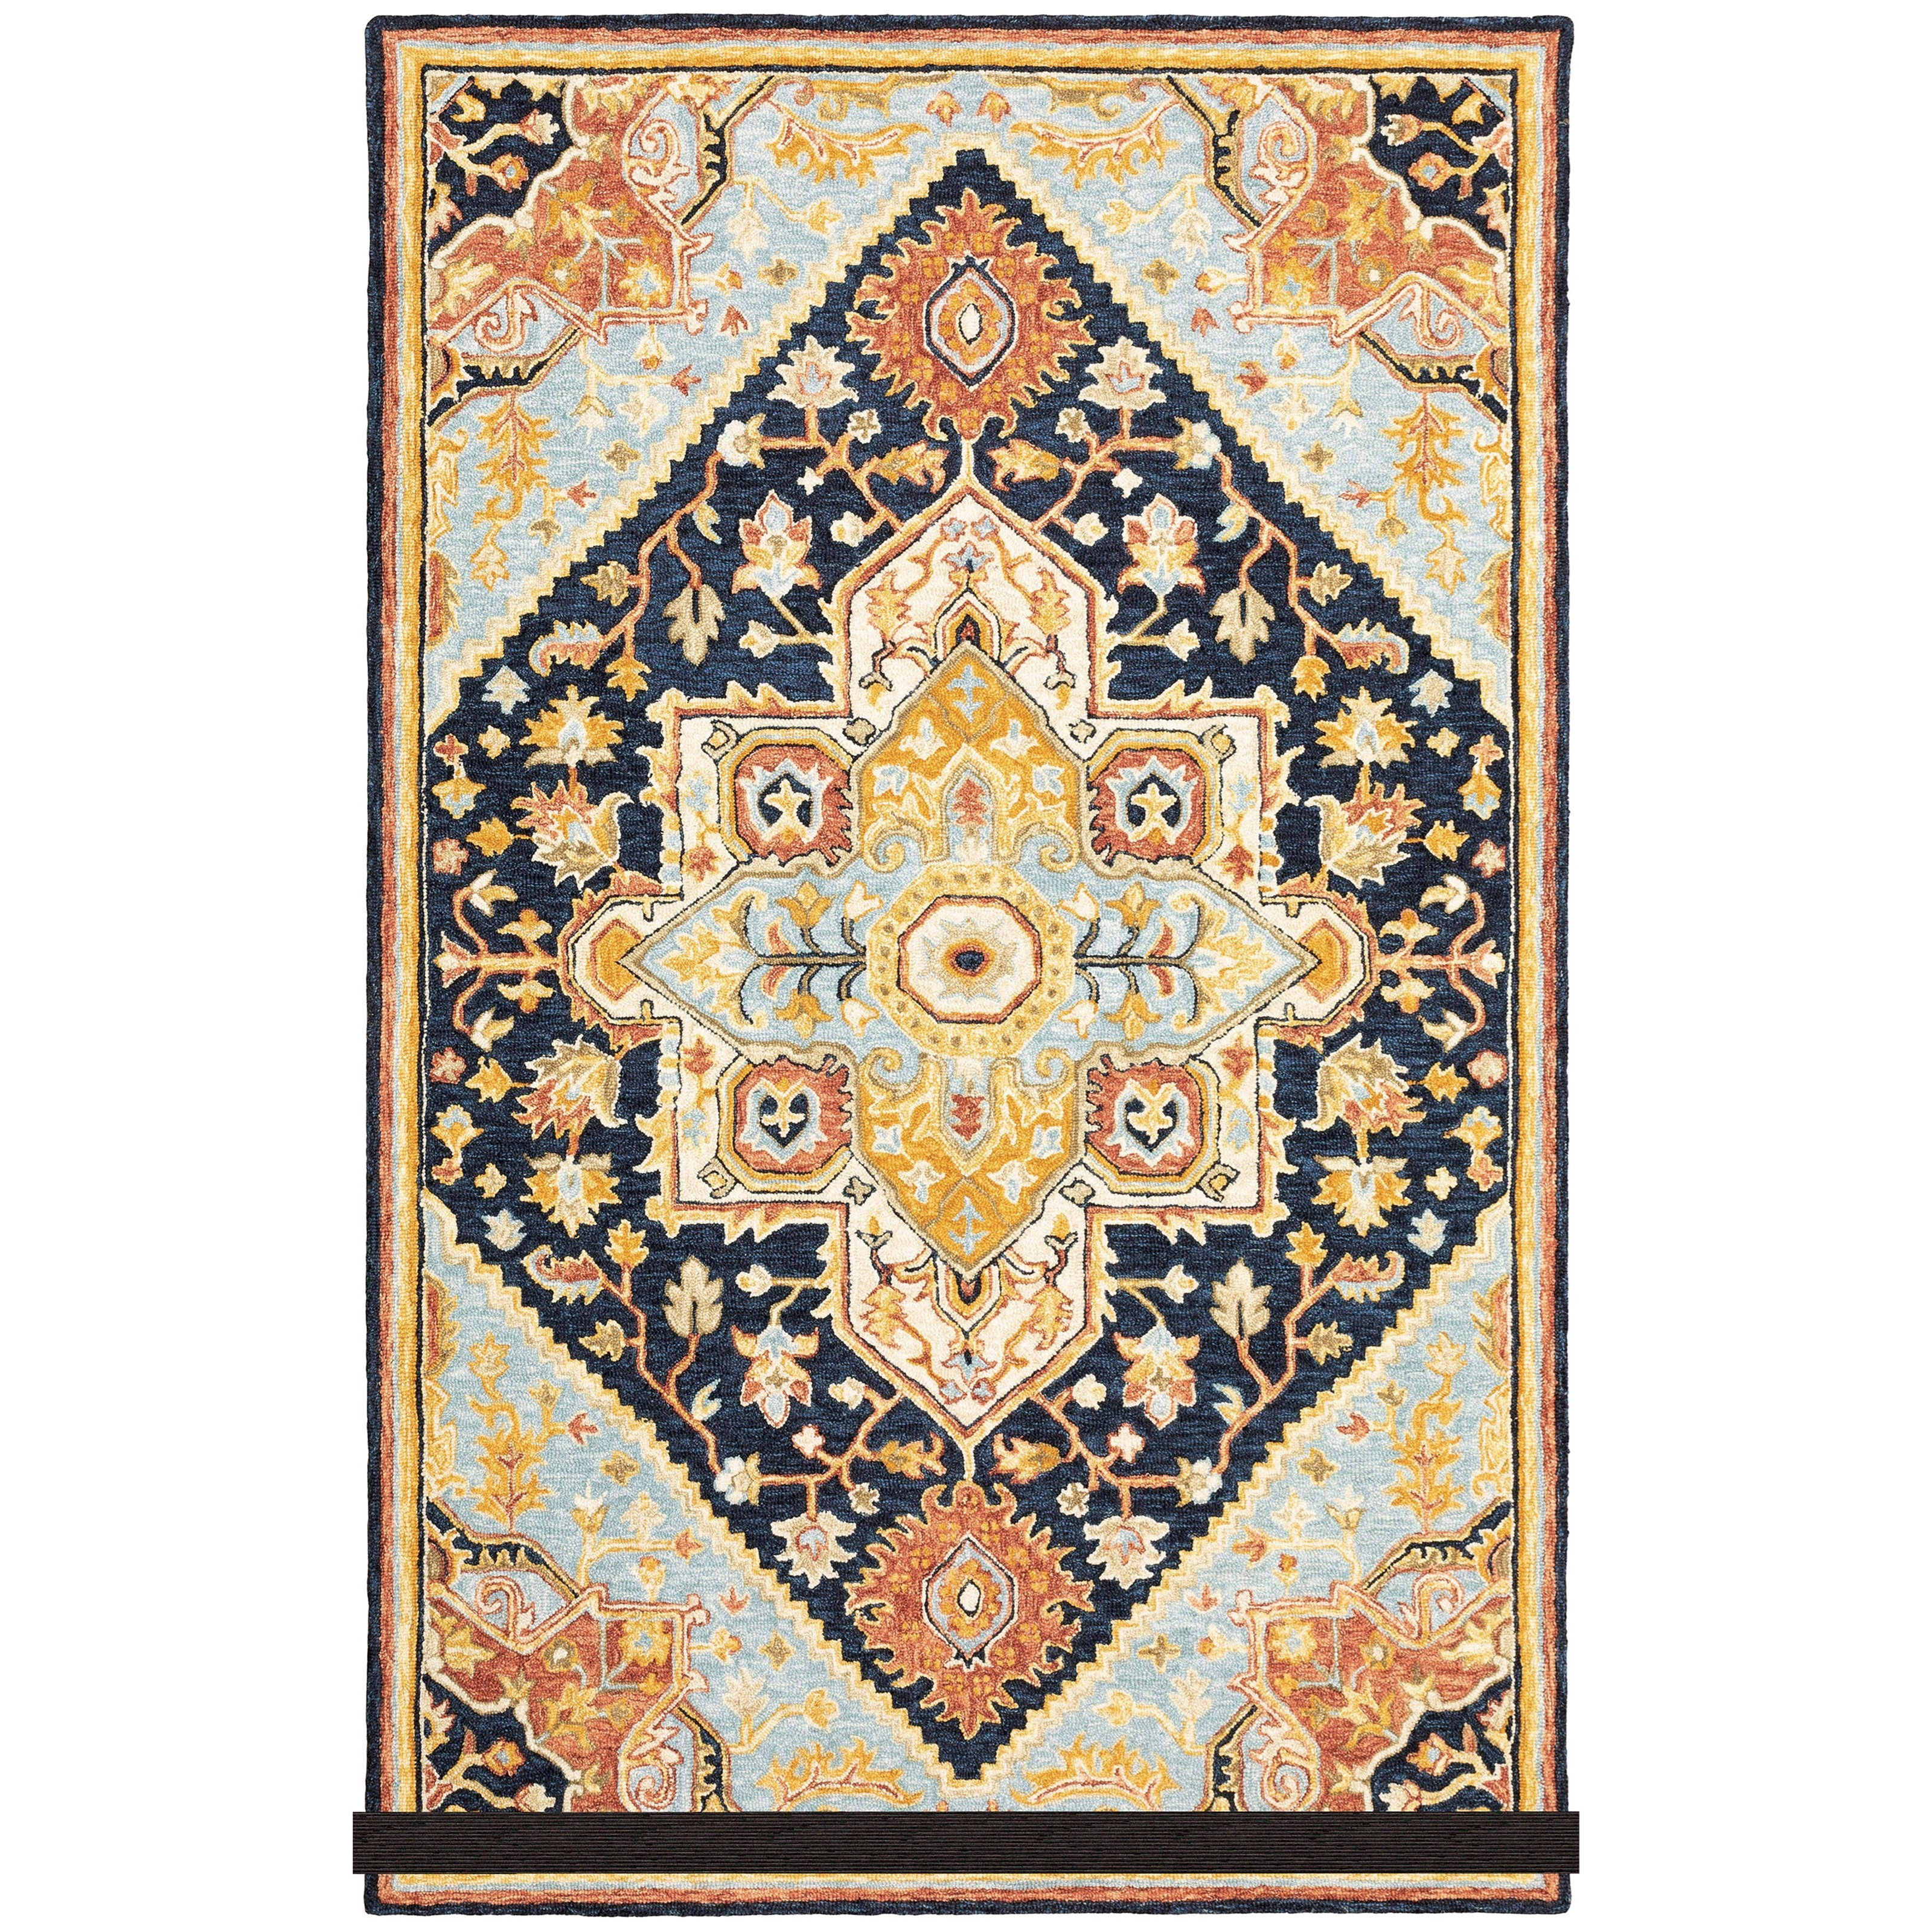 8' X 10' Rectangle Rug